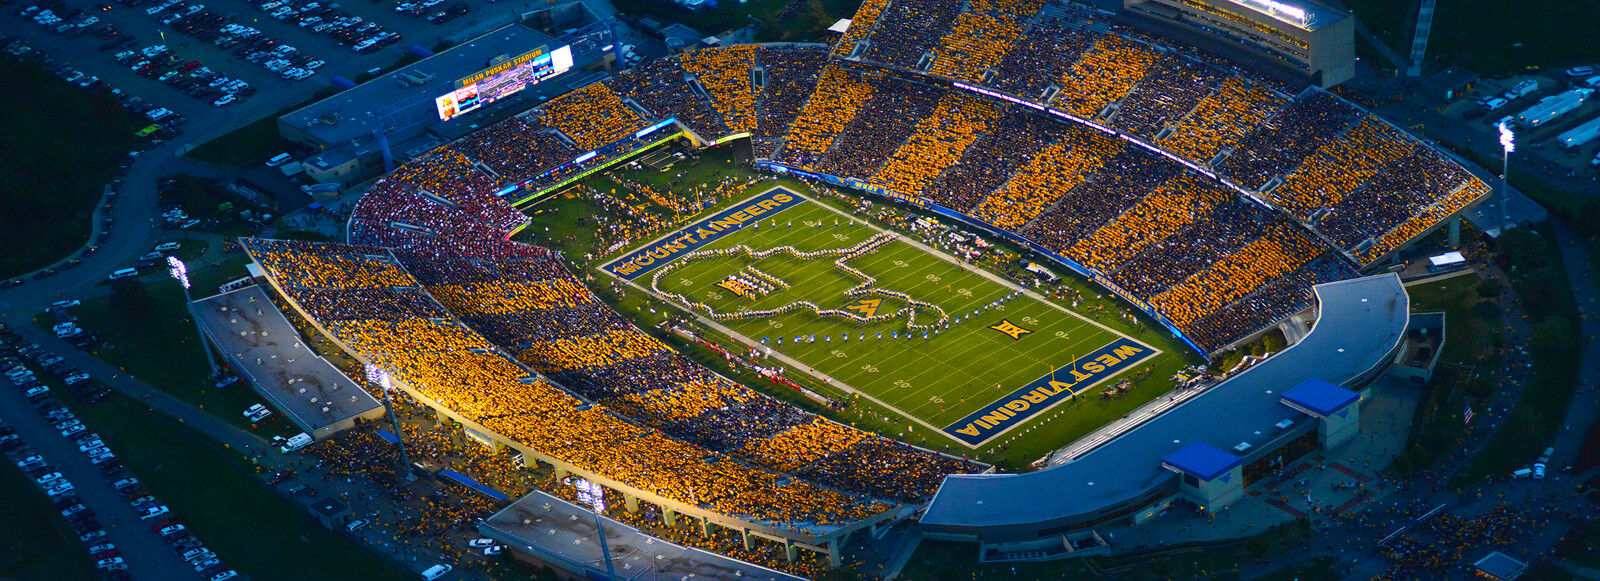 2018 West Virginia Mountaineers Football Season Tickets - Season Package (Includes Tickets for all Home Games)